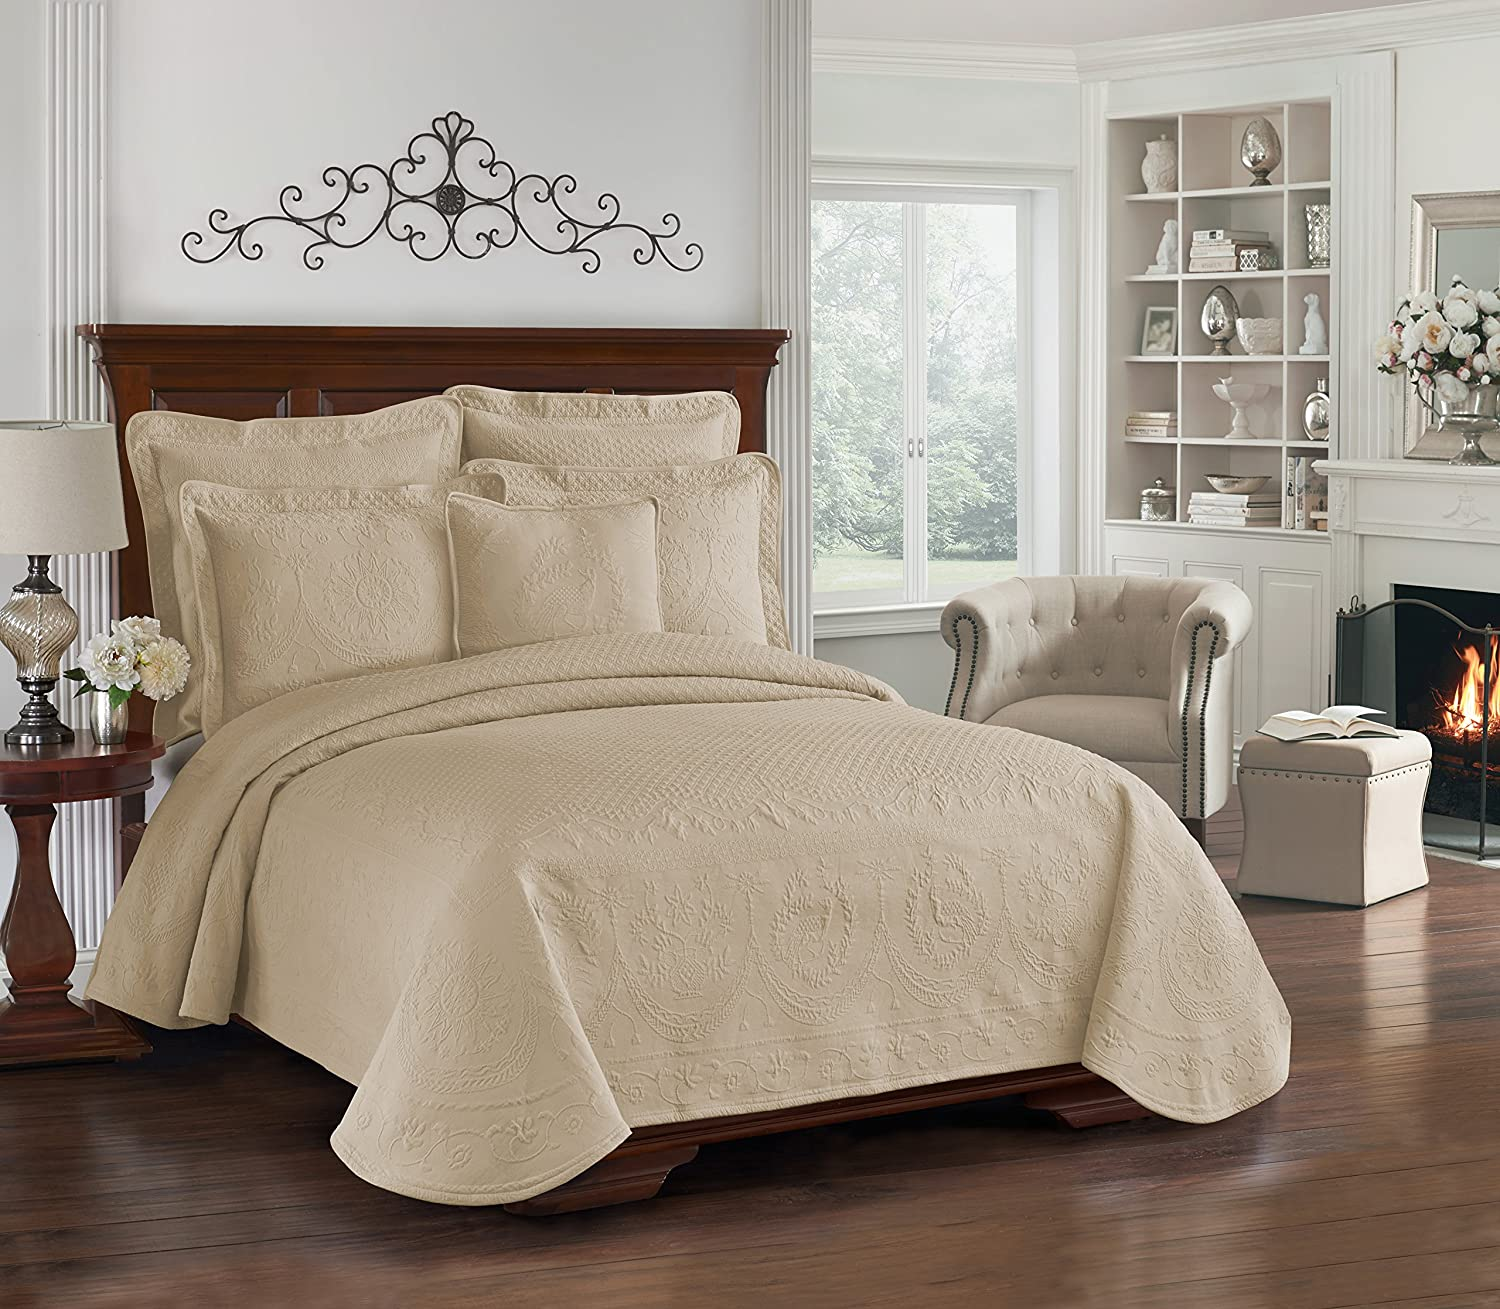 Historic Charleston Collection King Charles Queen White Matelasse Bedspread ONLY